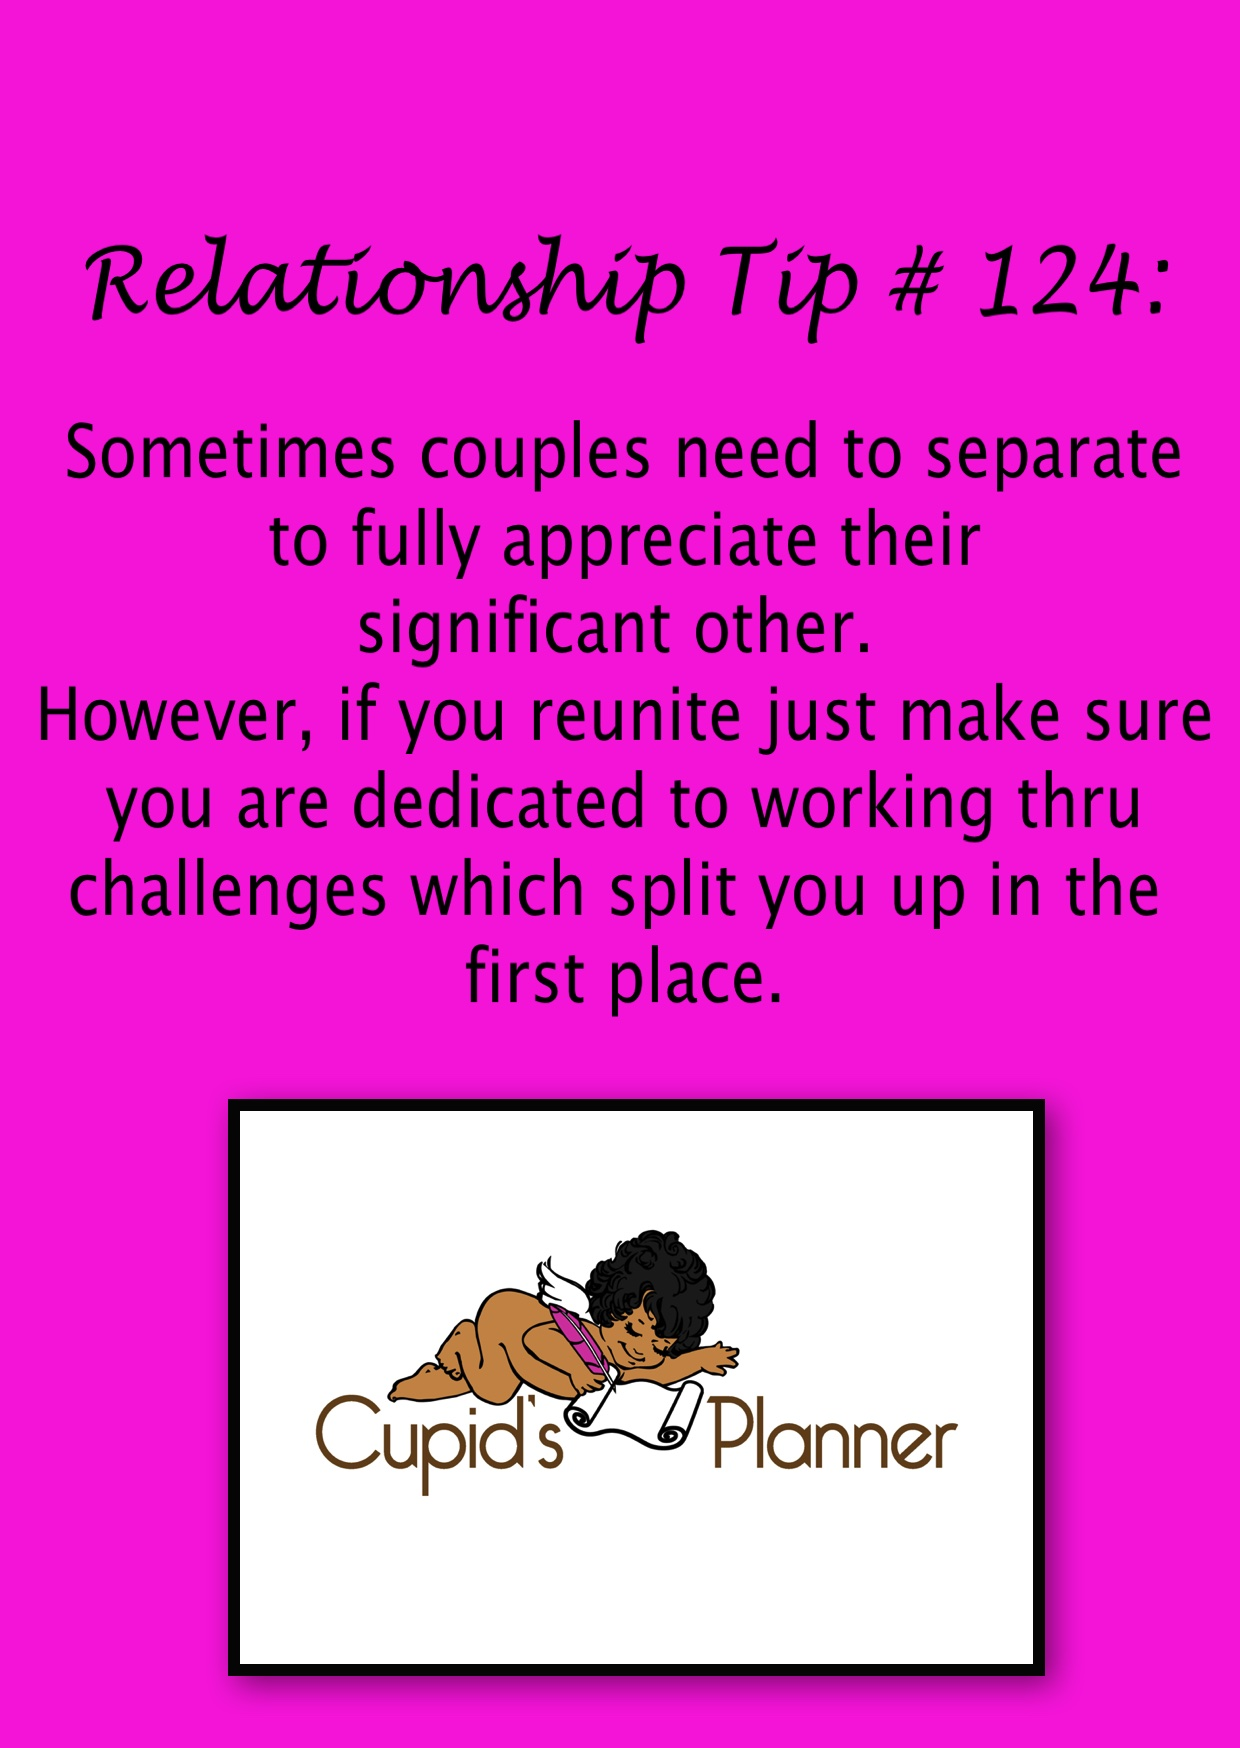 Benefits of Separation in Relationships